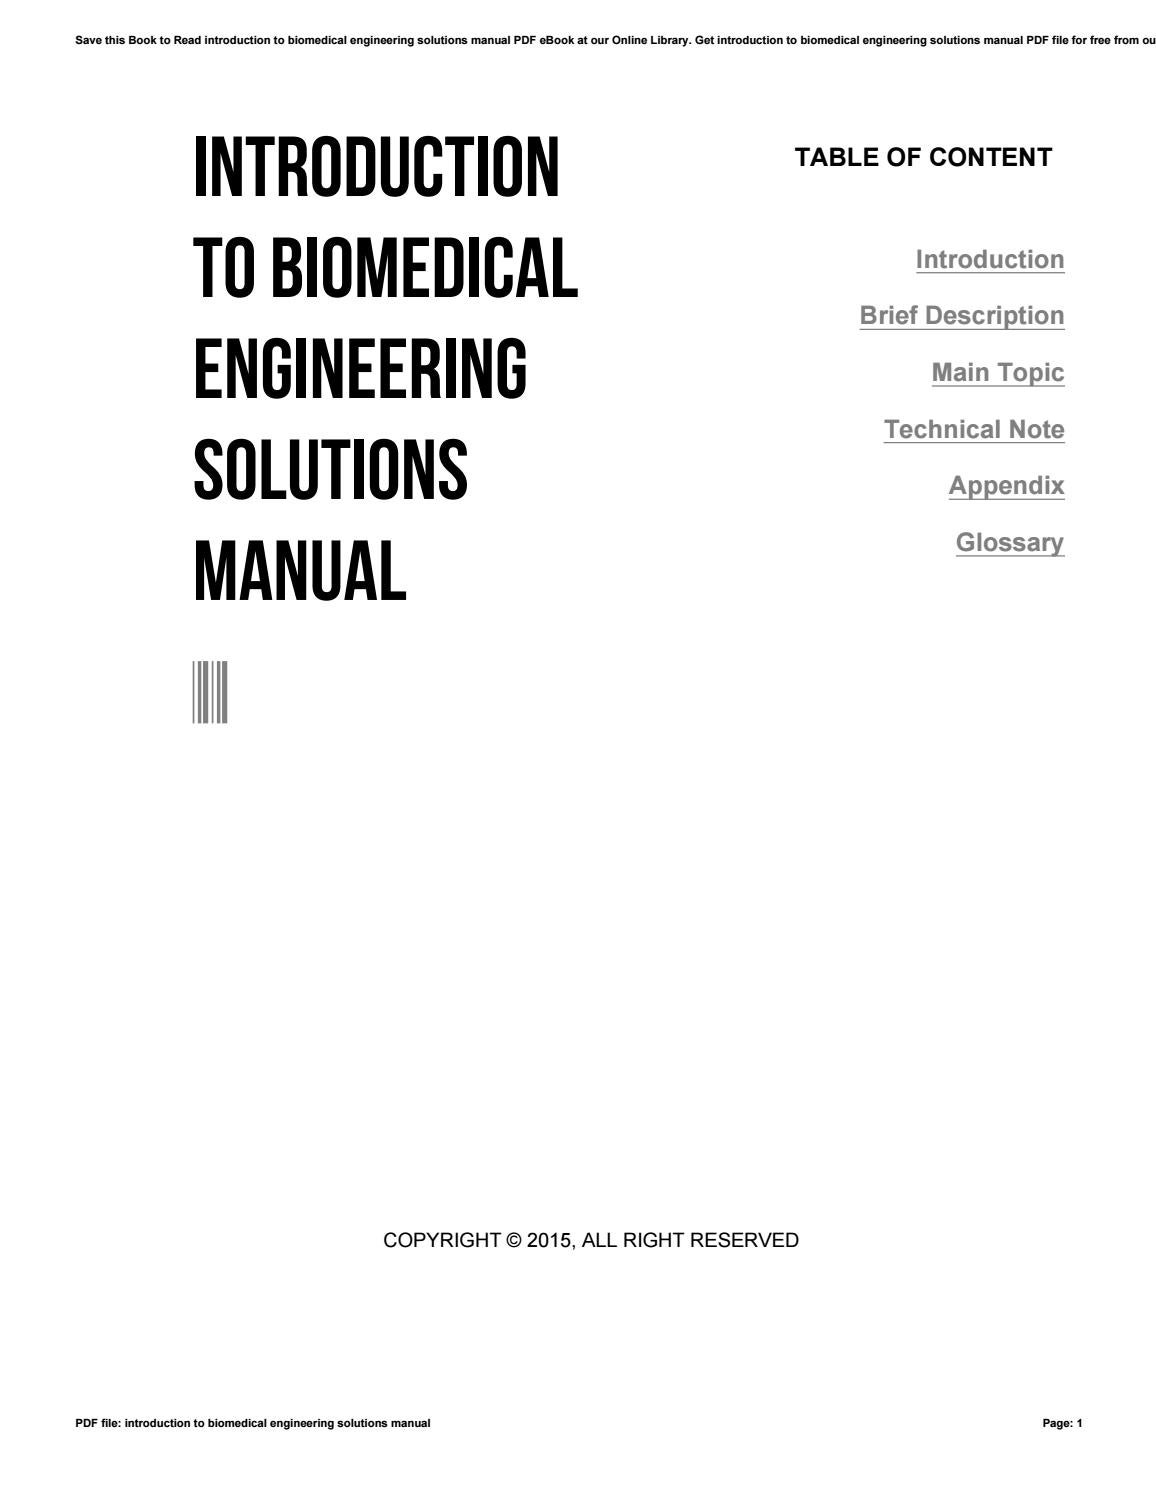 Introduction to biomedical engineering solutions manual by